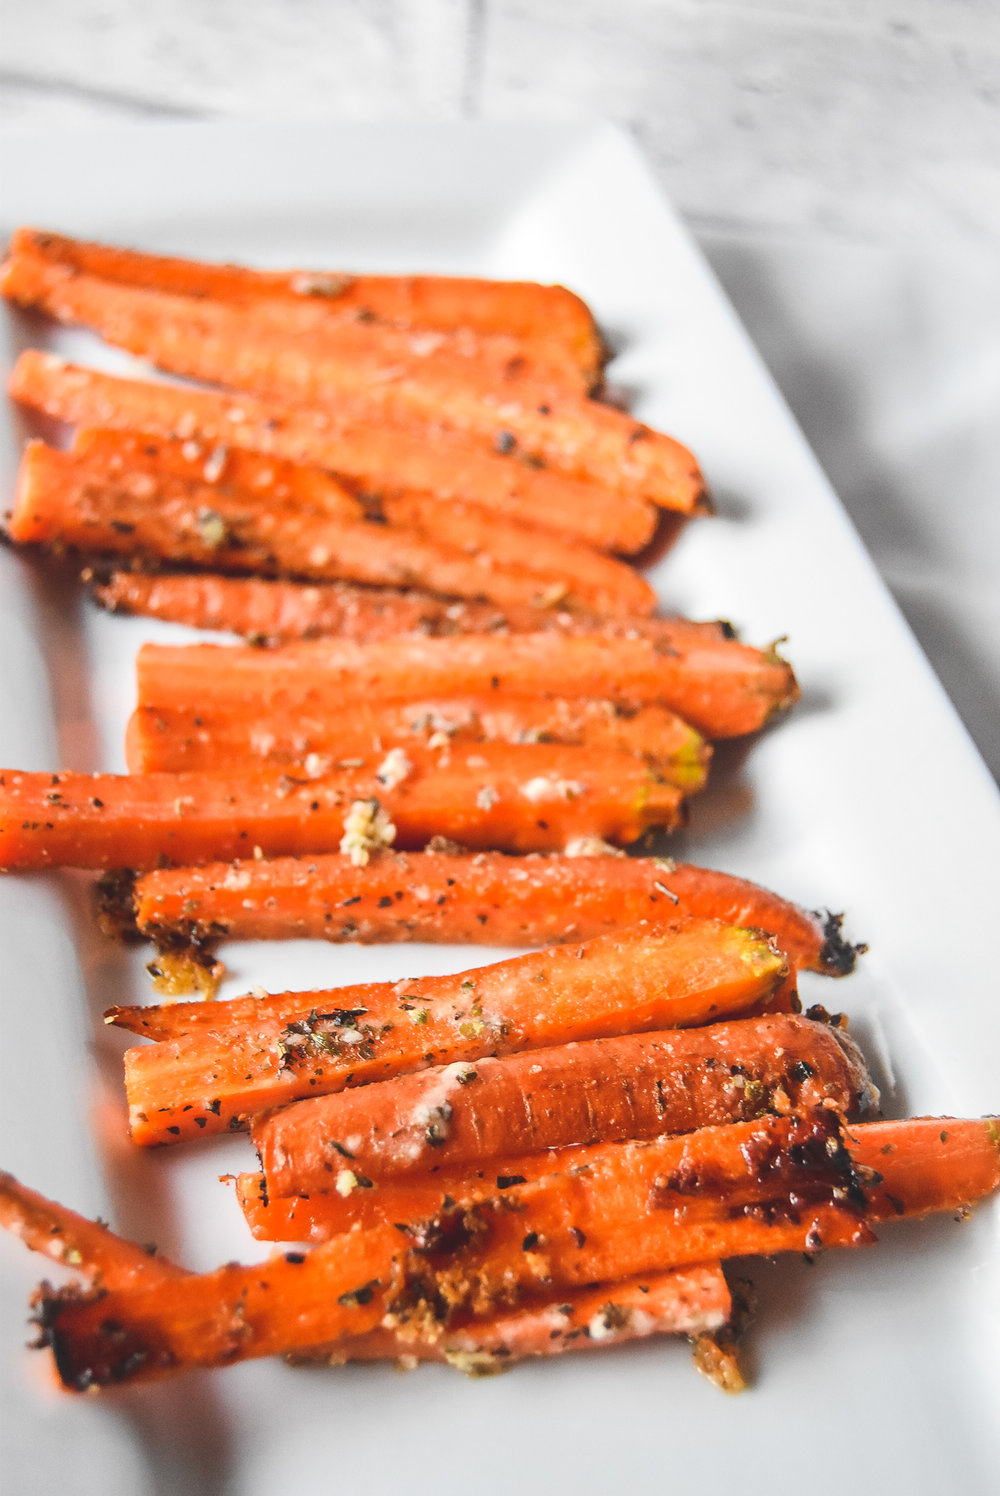 Garlic Parmesan Baked Carrot Fries 2.jpg